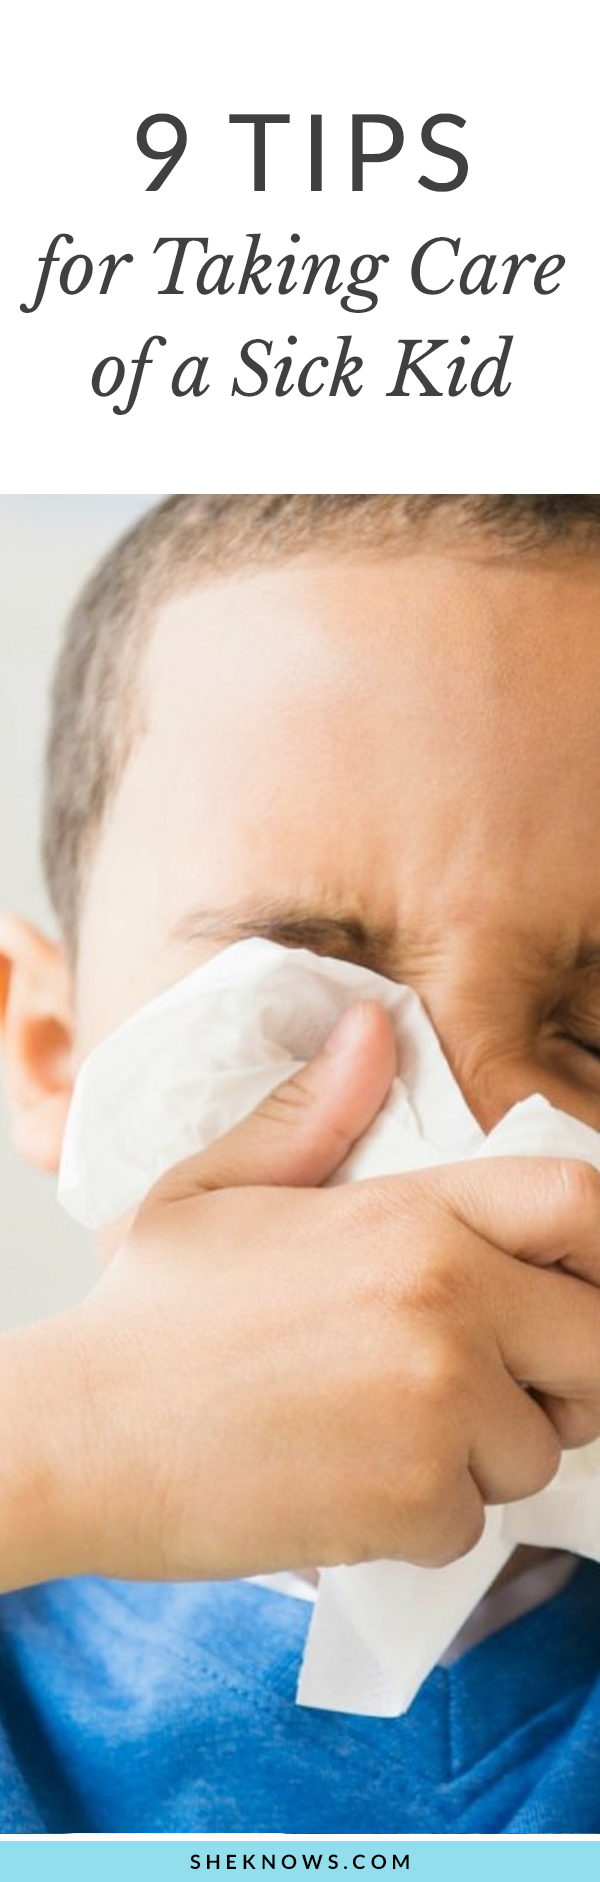 Pin it!: 9 Tips for Taking Care of a Sick Kid